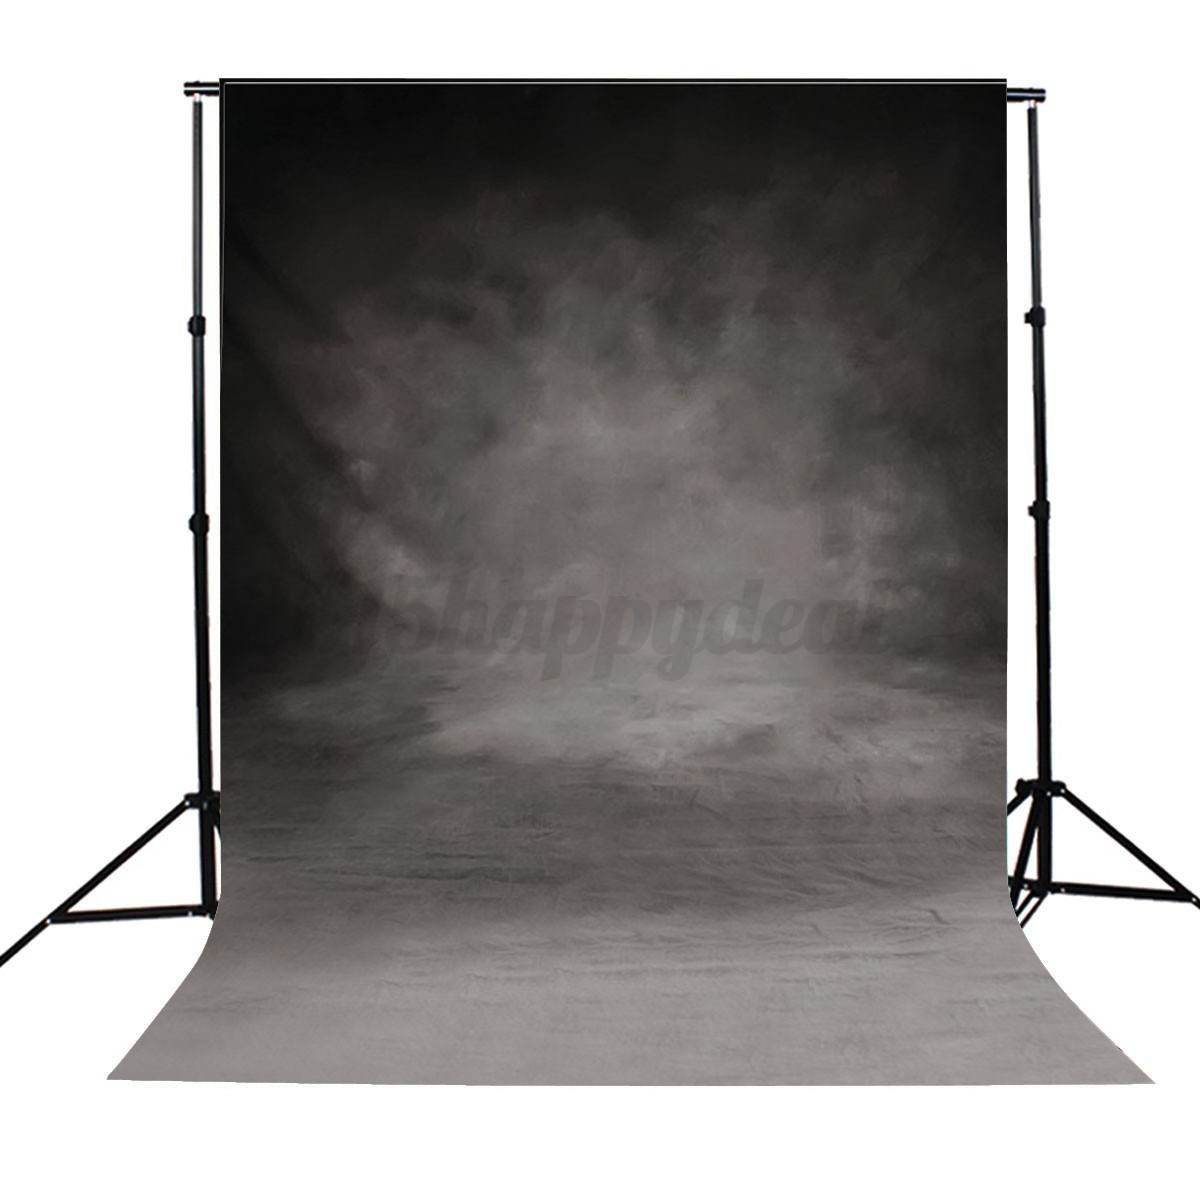 5x7ft retro palace cloth vinyl prop studio photo background photography backdrop ebay. Black Bedroom Furniture Sets. Home Design Ideas